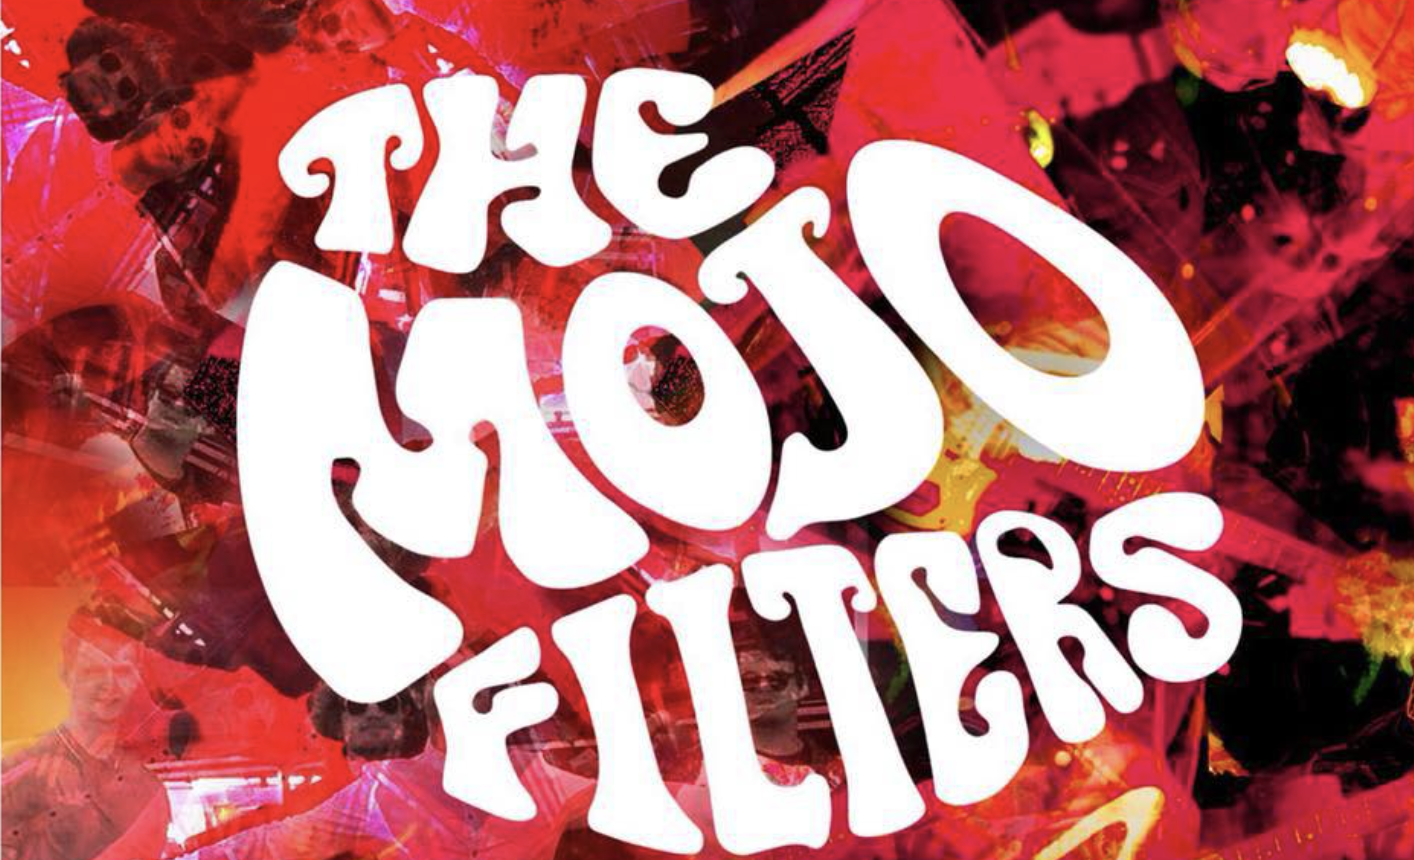 INTERVIEW: THE MOJO FILTERS